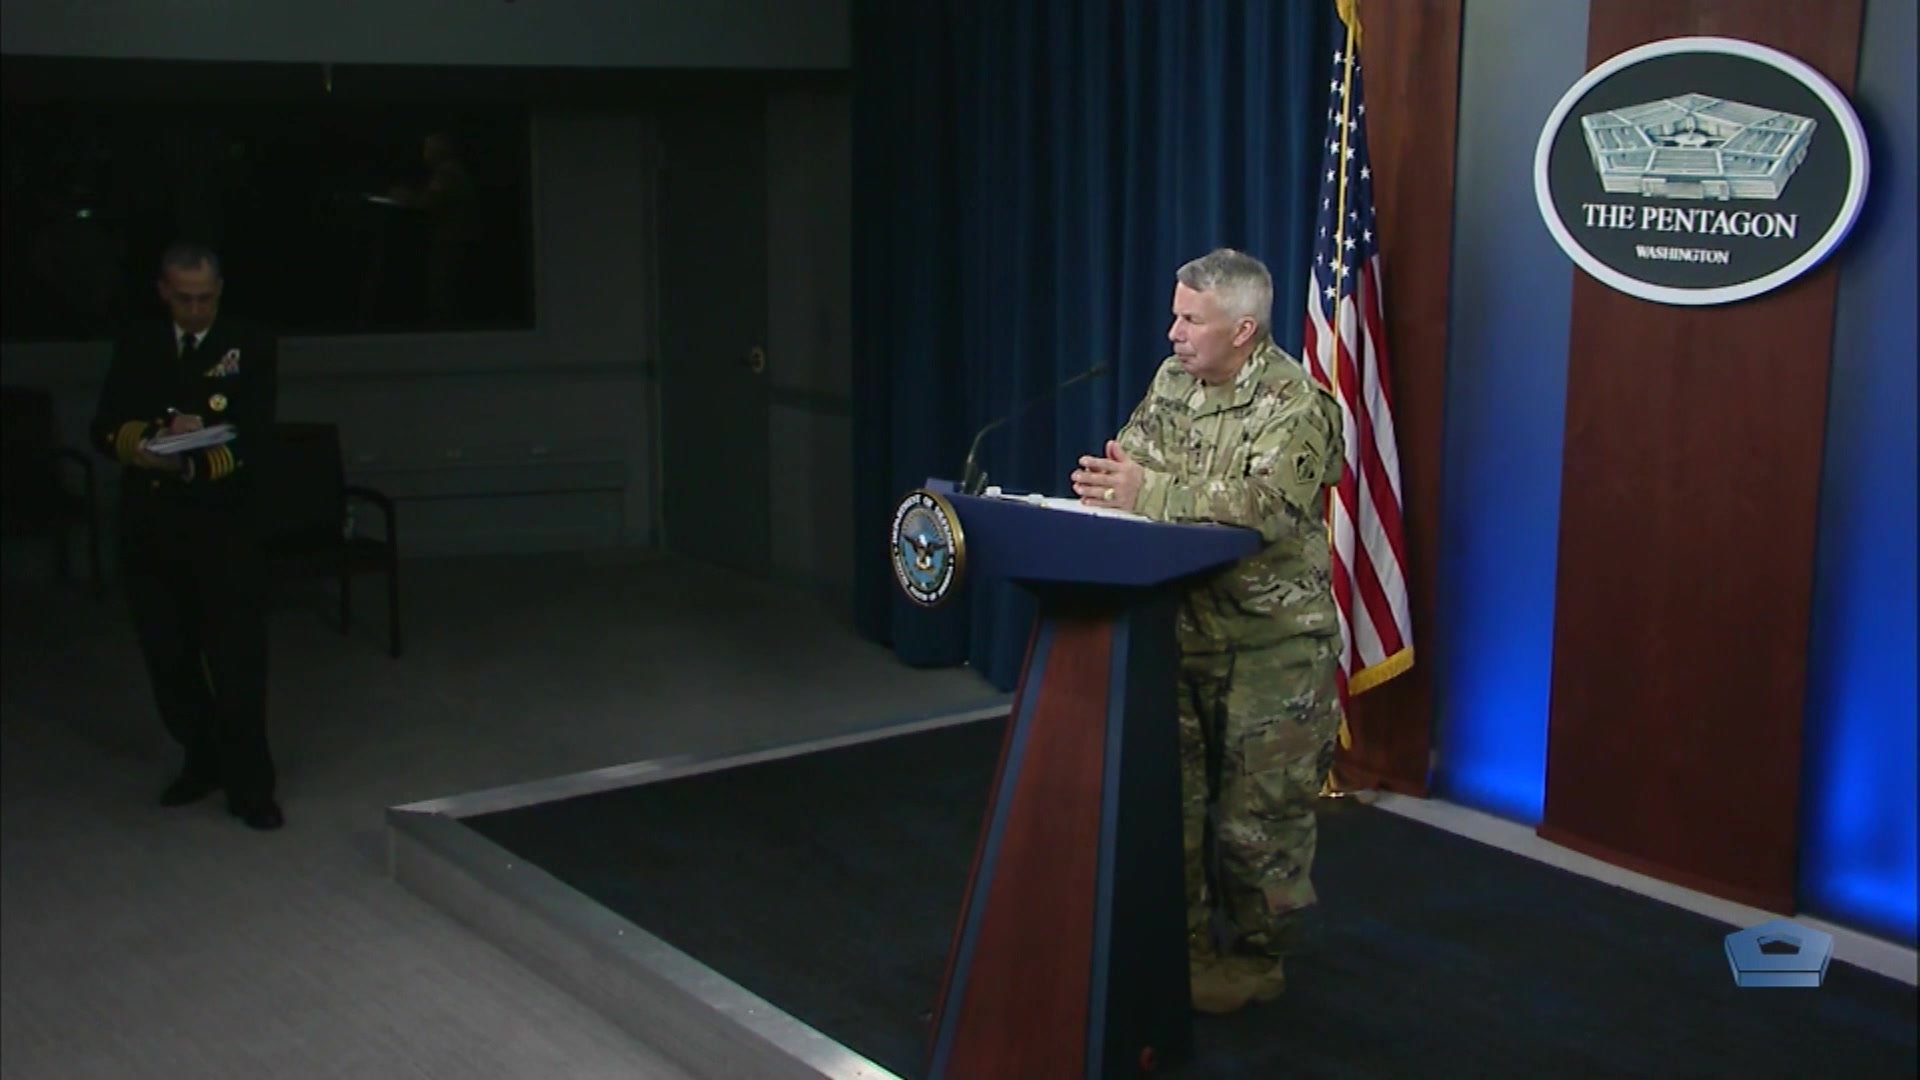 An Army general stands at a lectern.